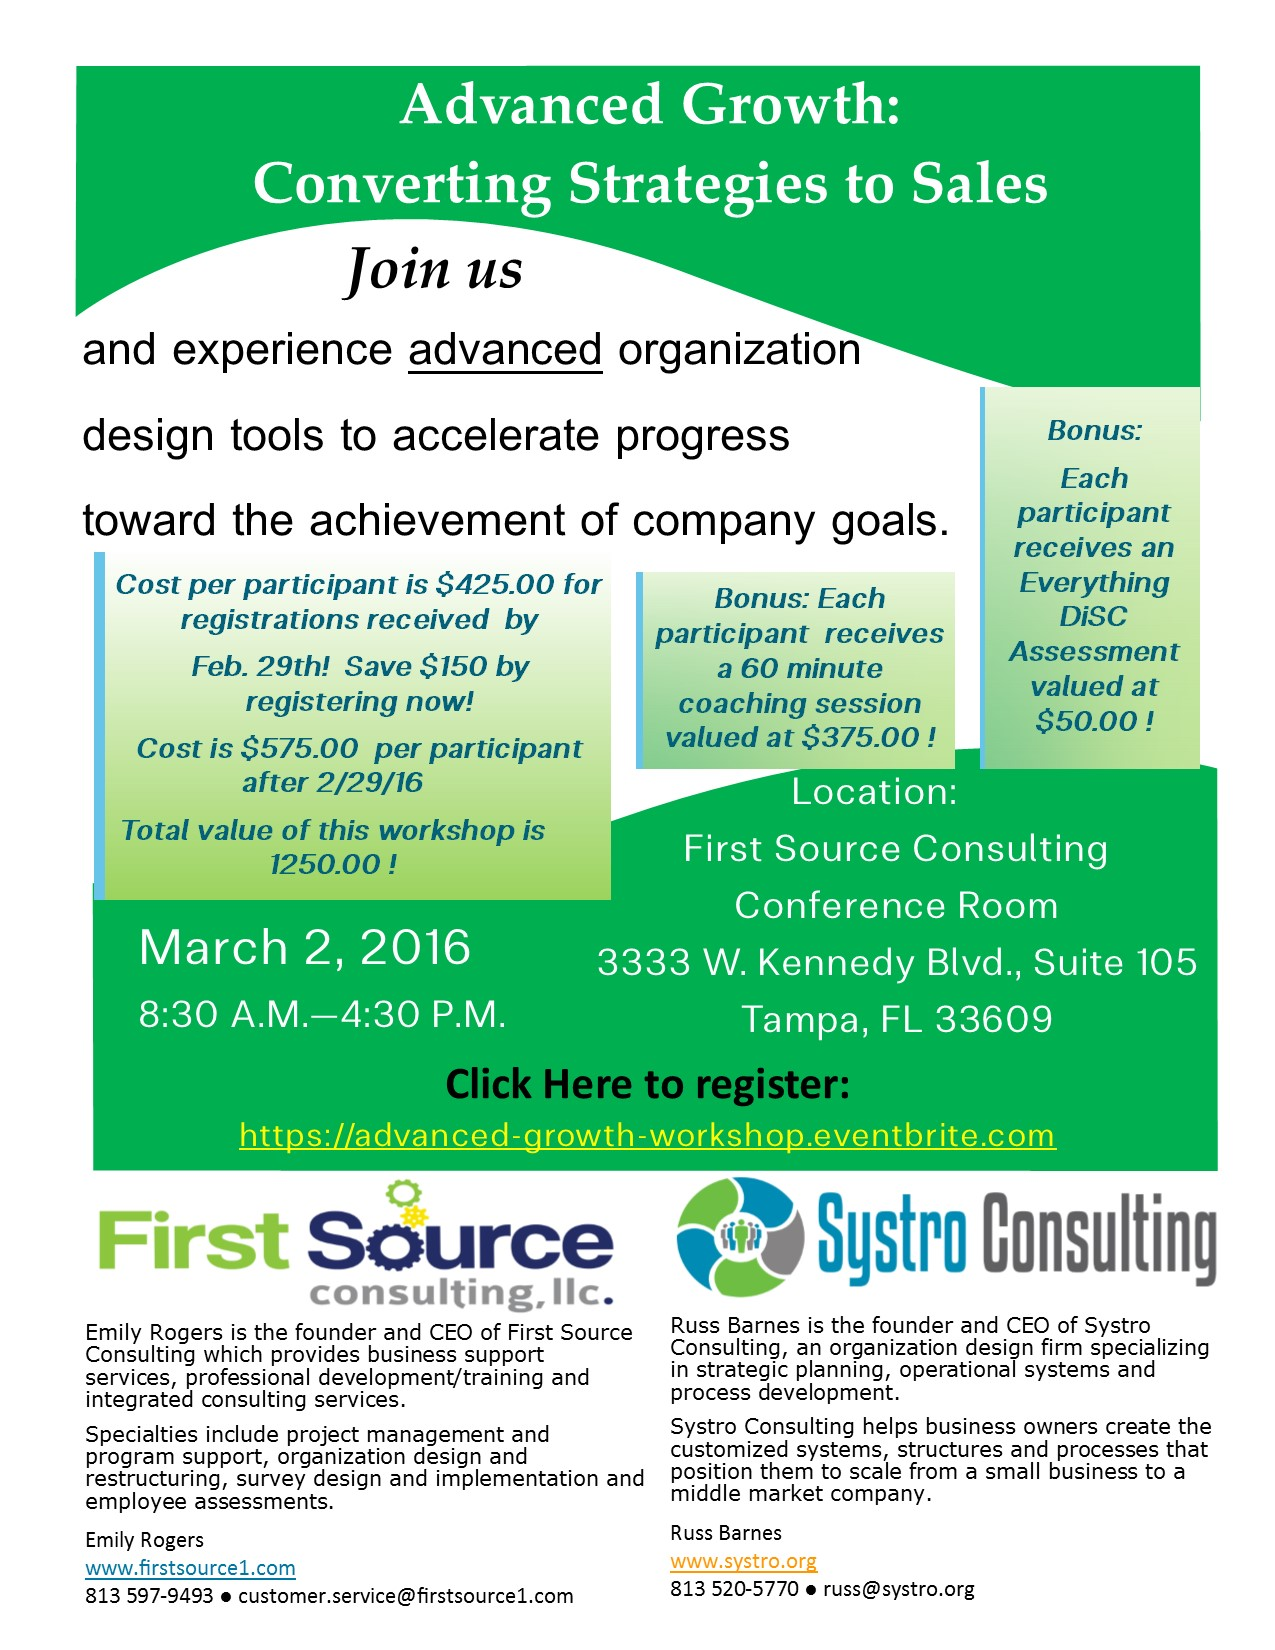 Growth Strategy Flyer Updated March 2016